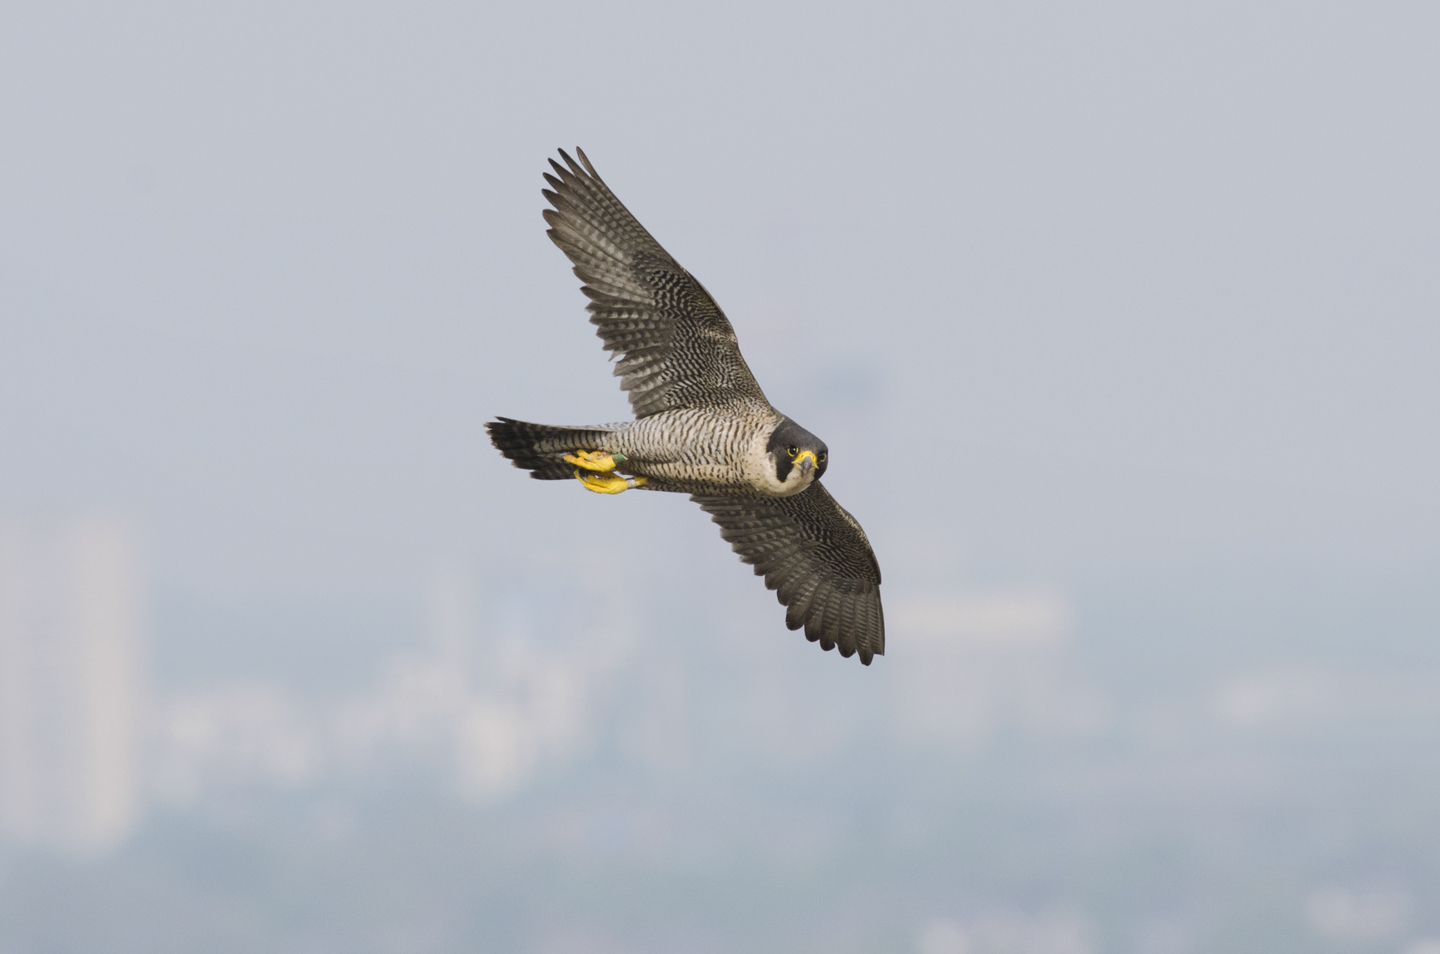 This has started to happen most noticeably in the south of England, where there are now more peregrines than ever before